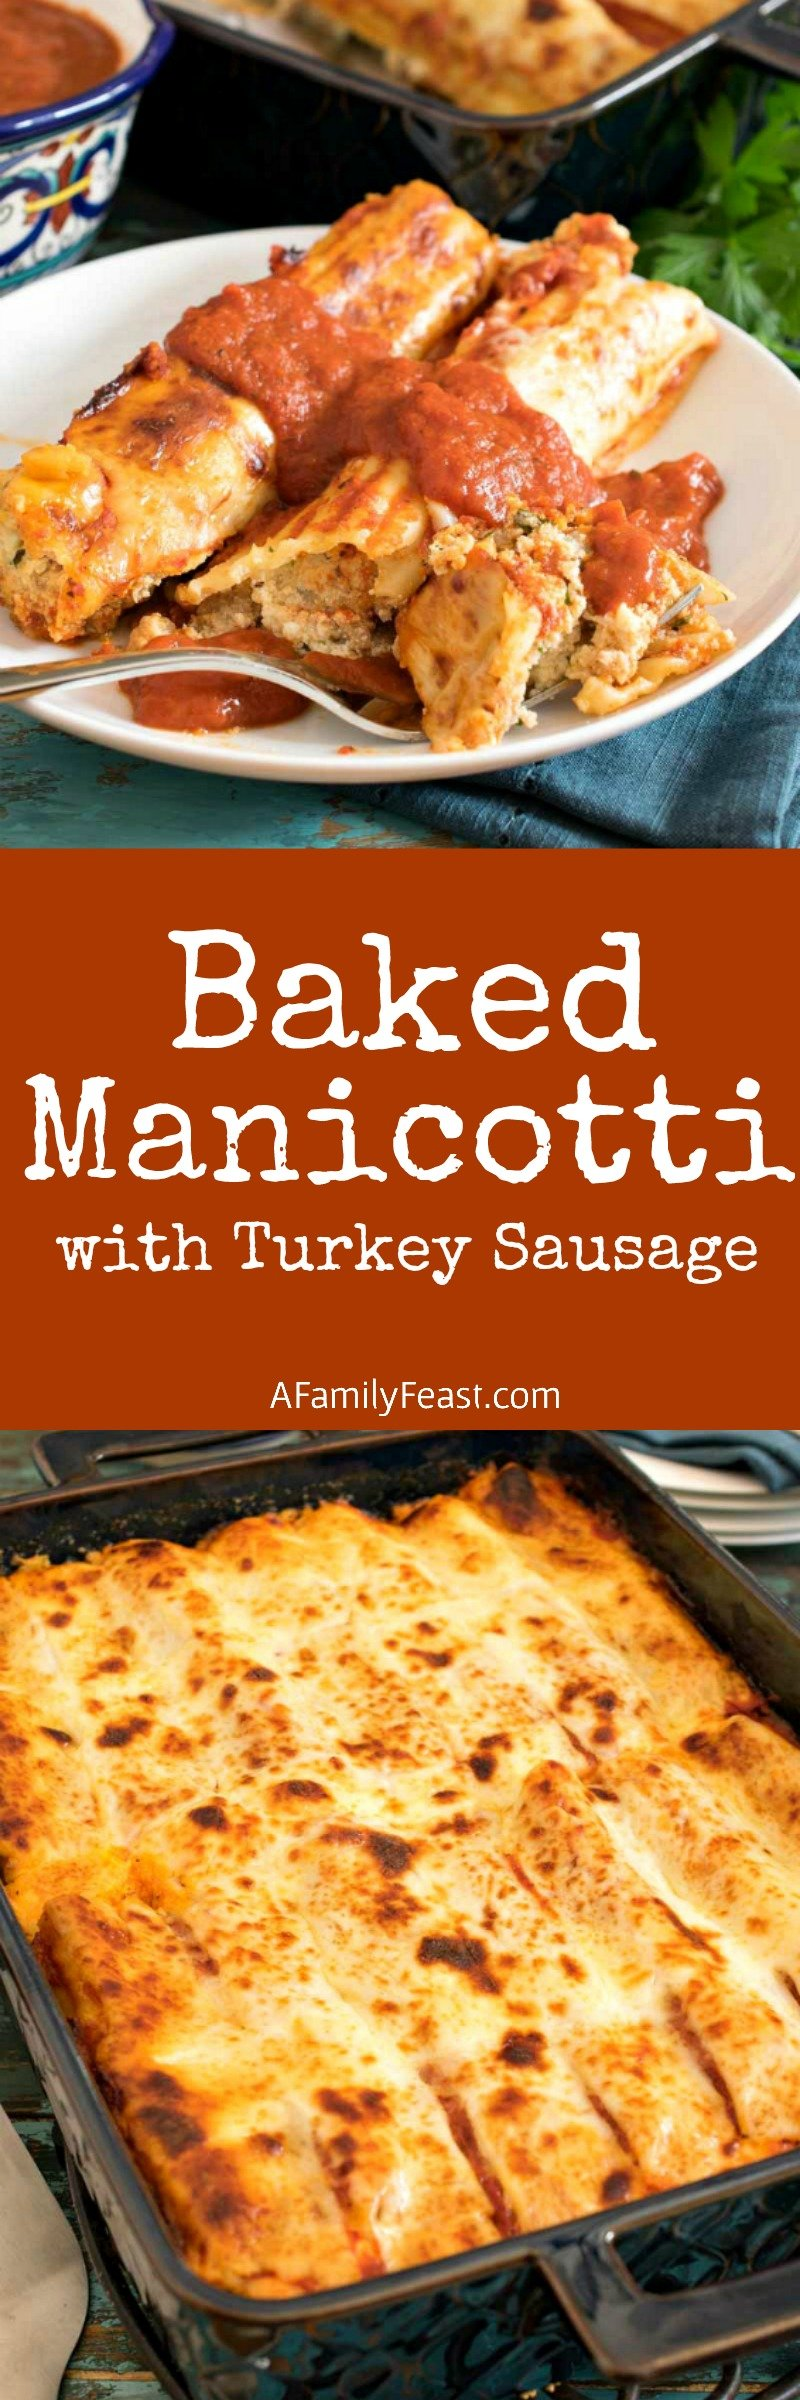 Baked Manicotti with Turkey Sausage is a delicious recipe everyone should have in their collection!